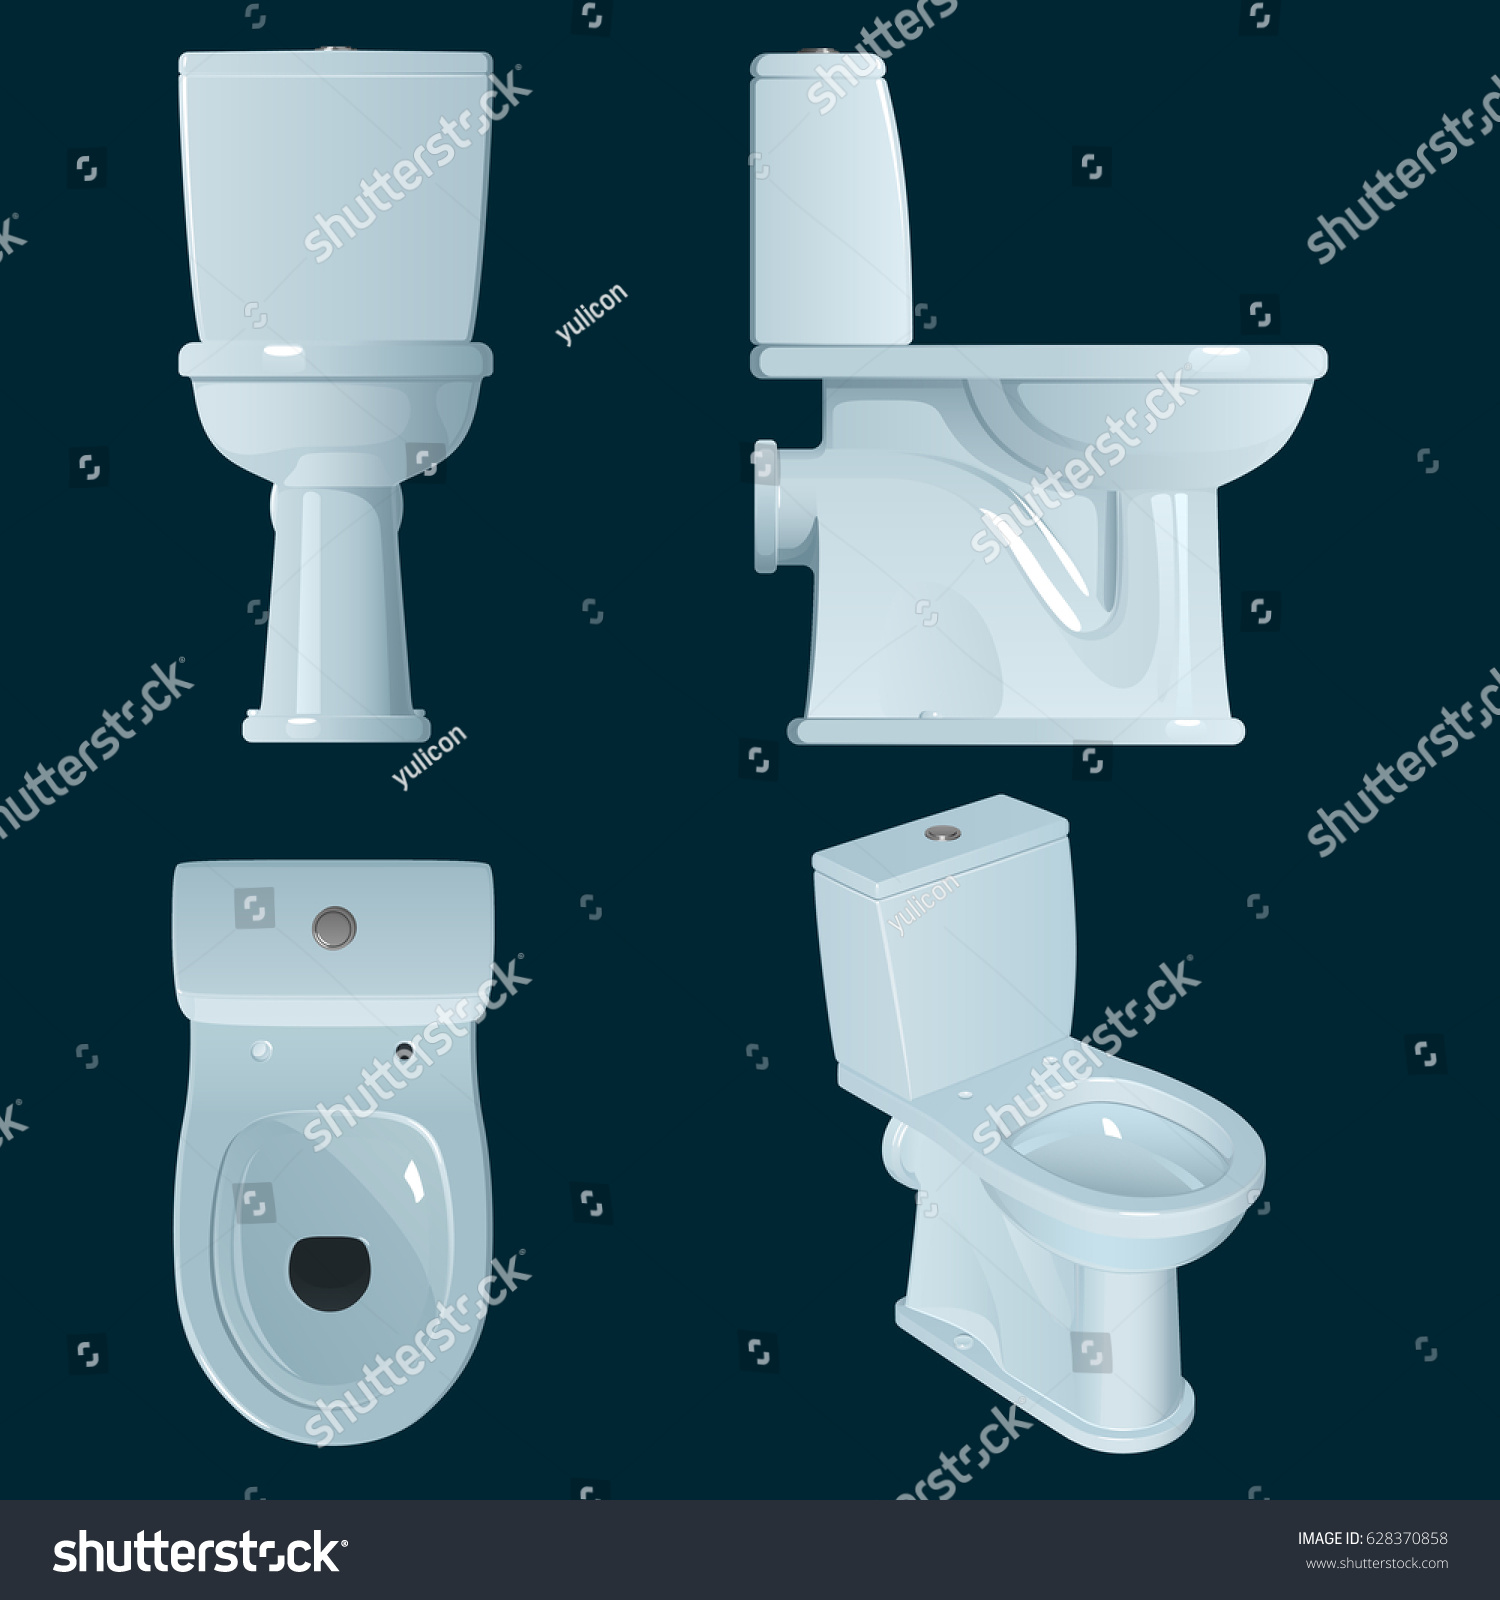 White Porcelain Toilet Bowl On A Dark Blue Background General View And Three Projections